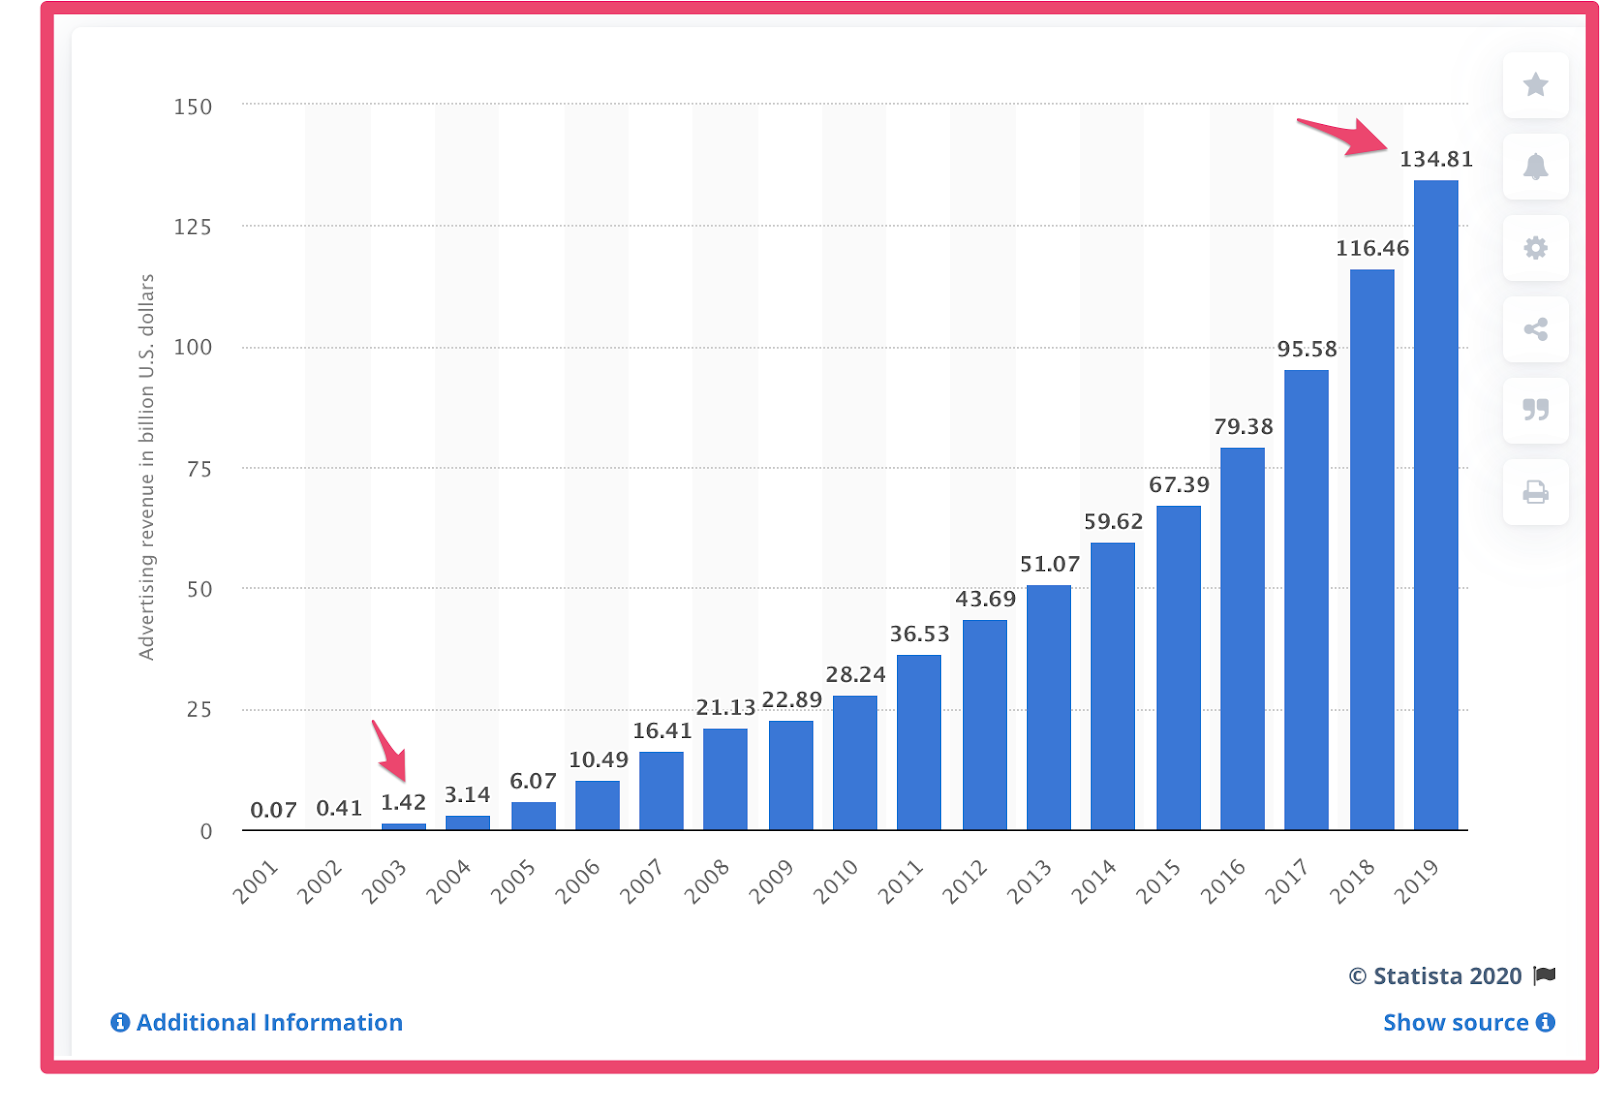 Advertising revenue of Google from 2001 to 2019